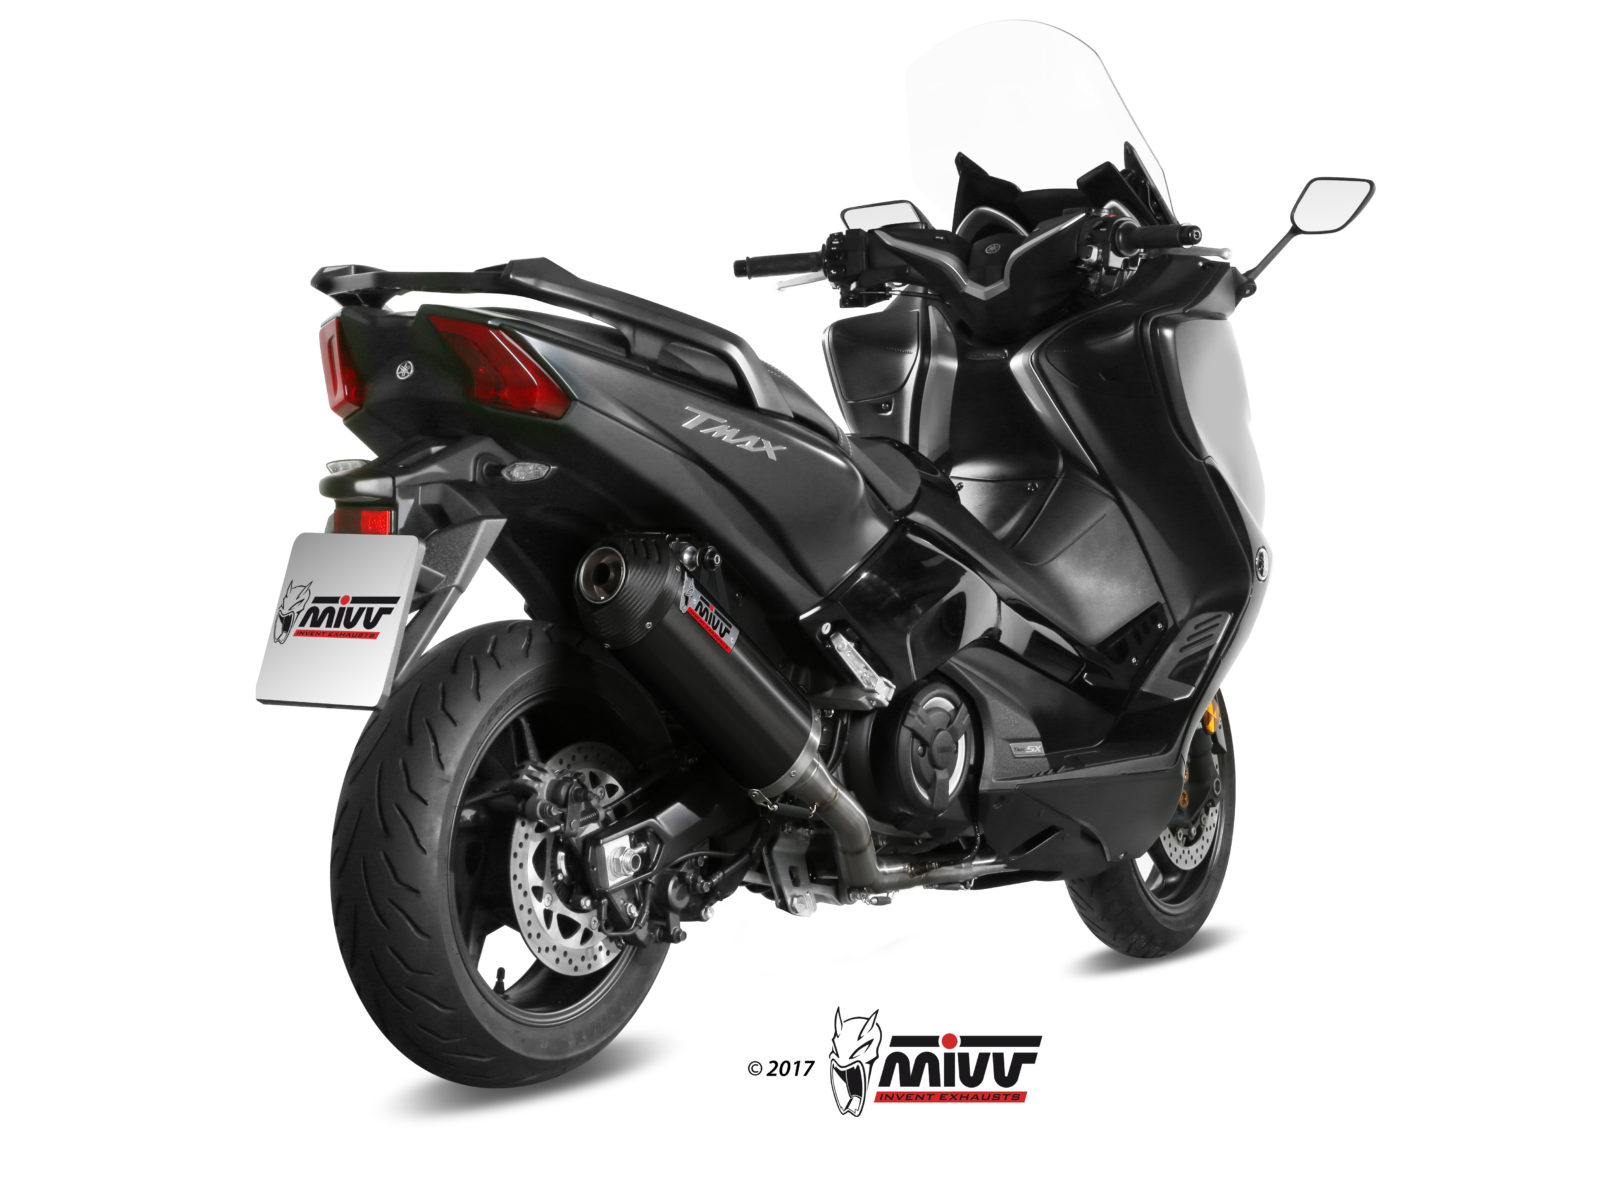 YAMAHA T-MAX 530 Exhaust Mivv Oval Black stainless steel with Carbon cap Y.061.LVC